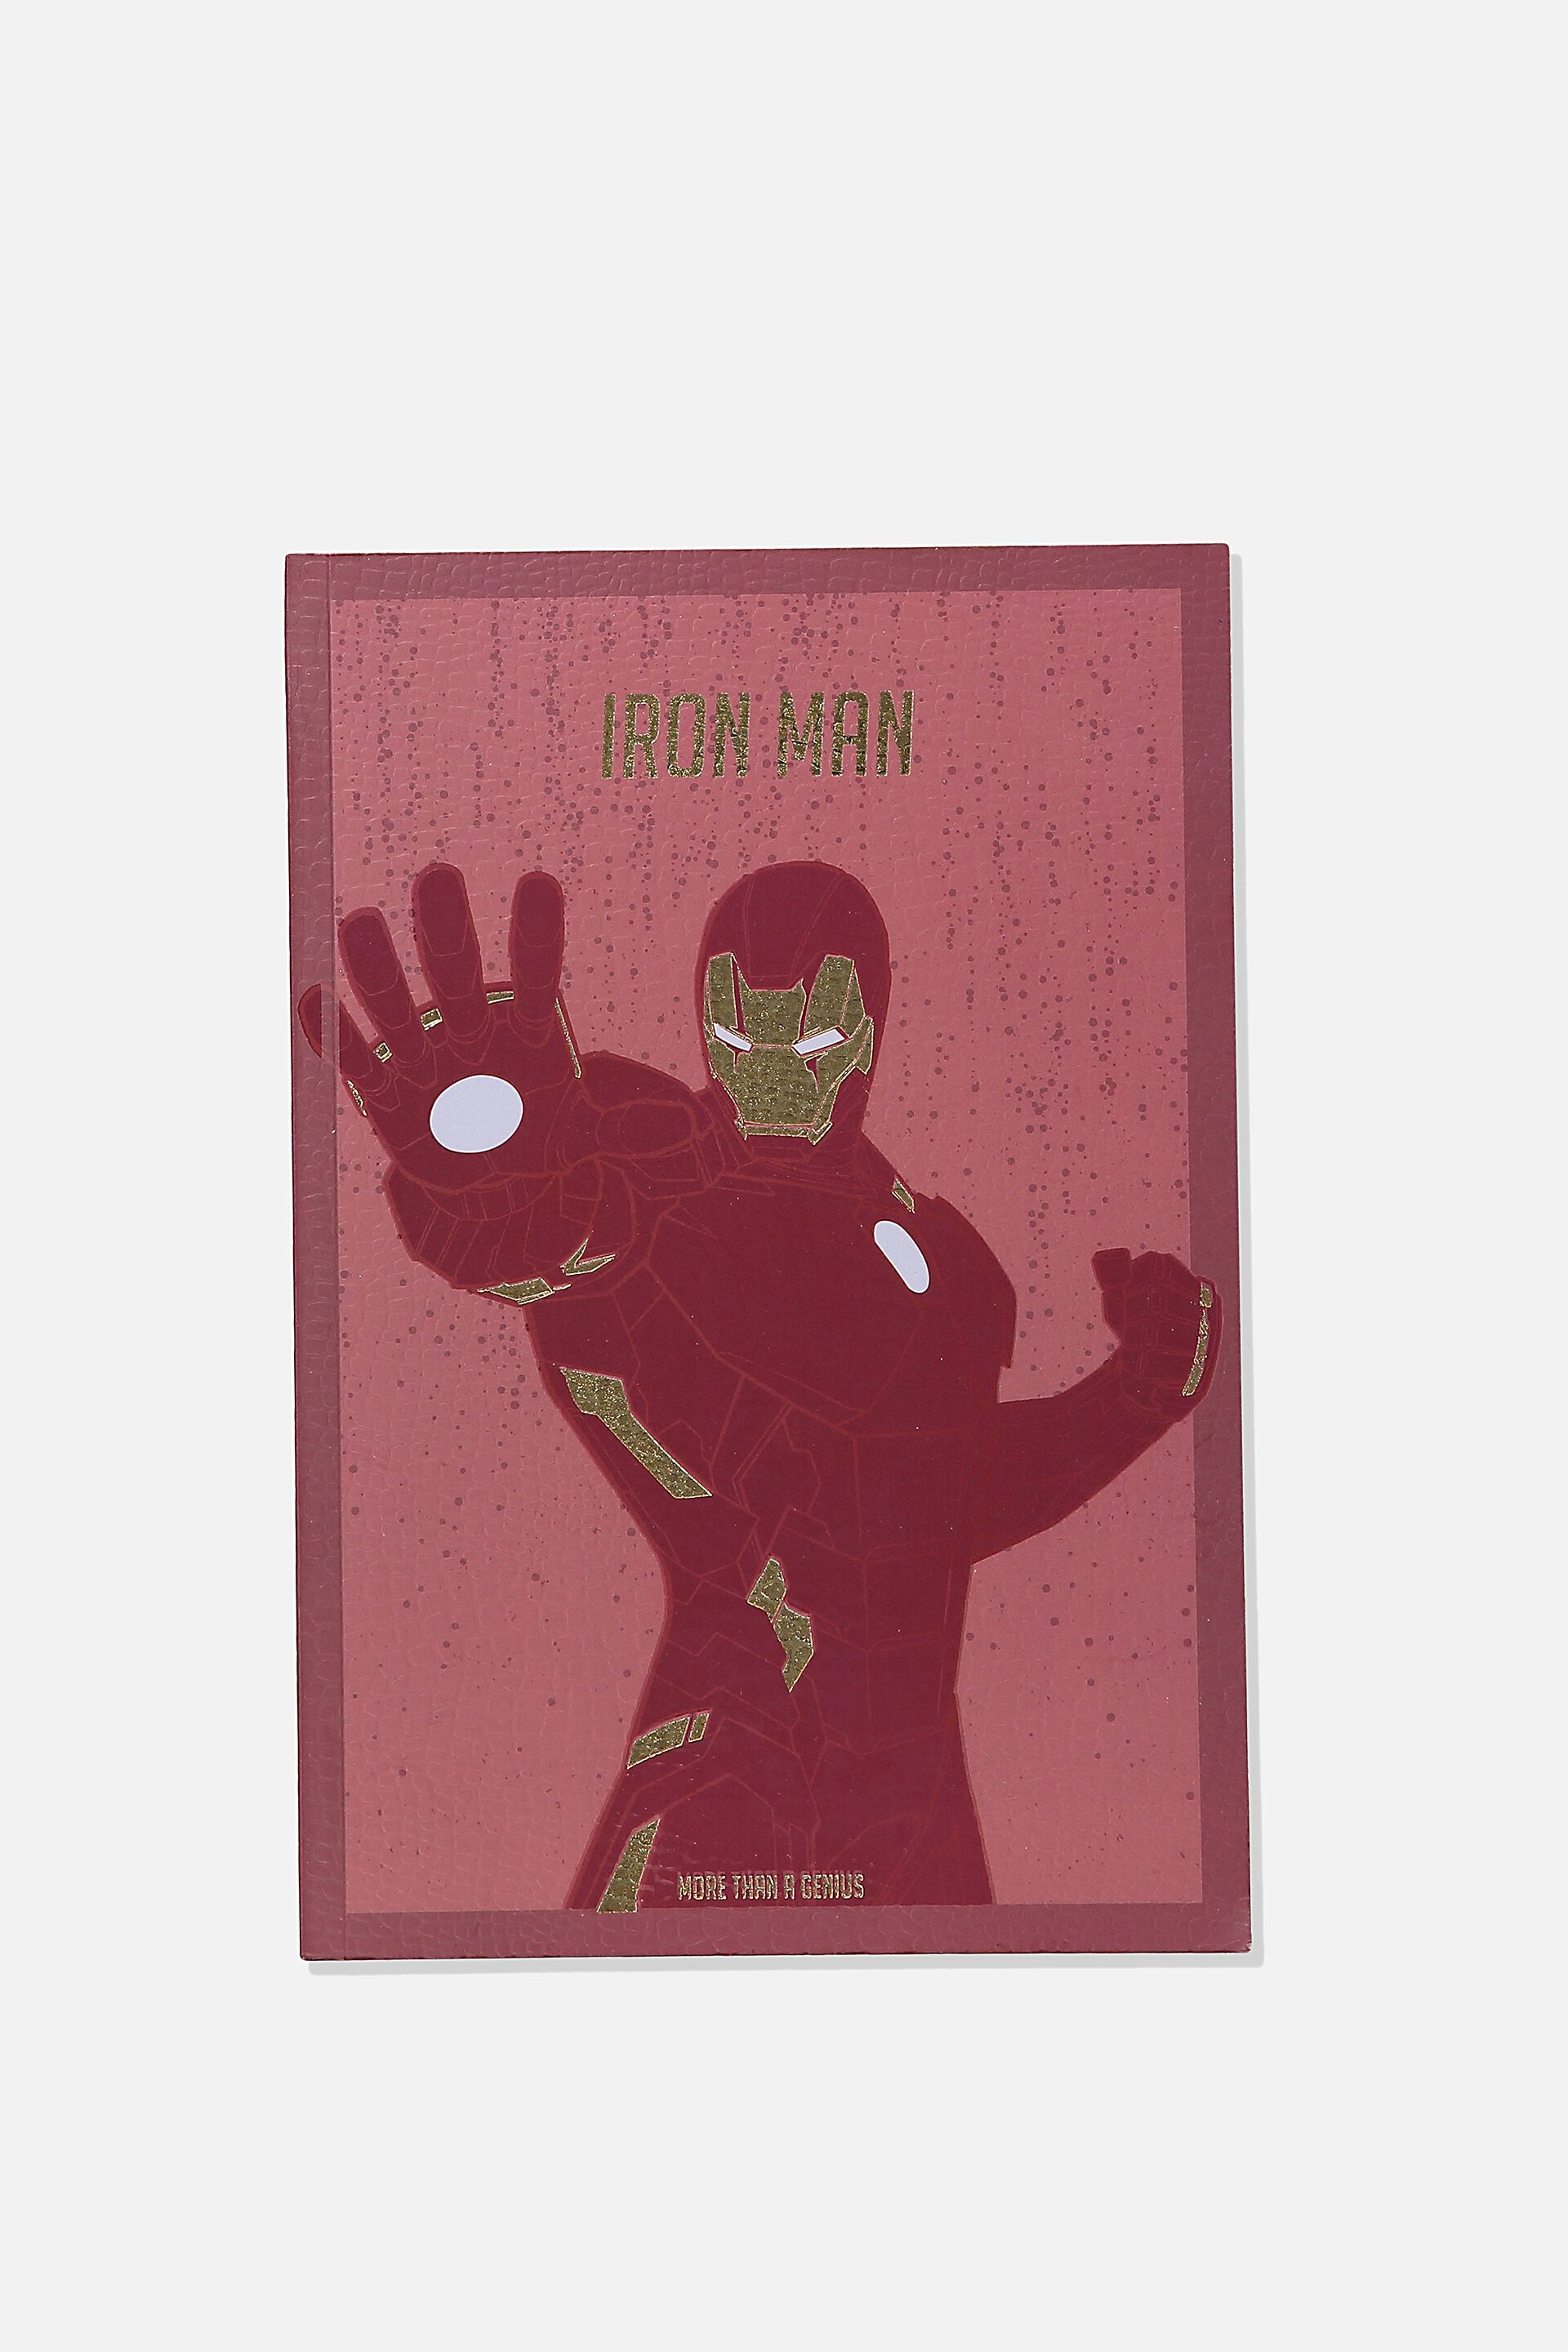 THE HULK Marvel Poster Picture Print Sizes A5 to A0 **FREE DELIVERY**